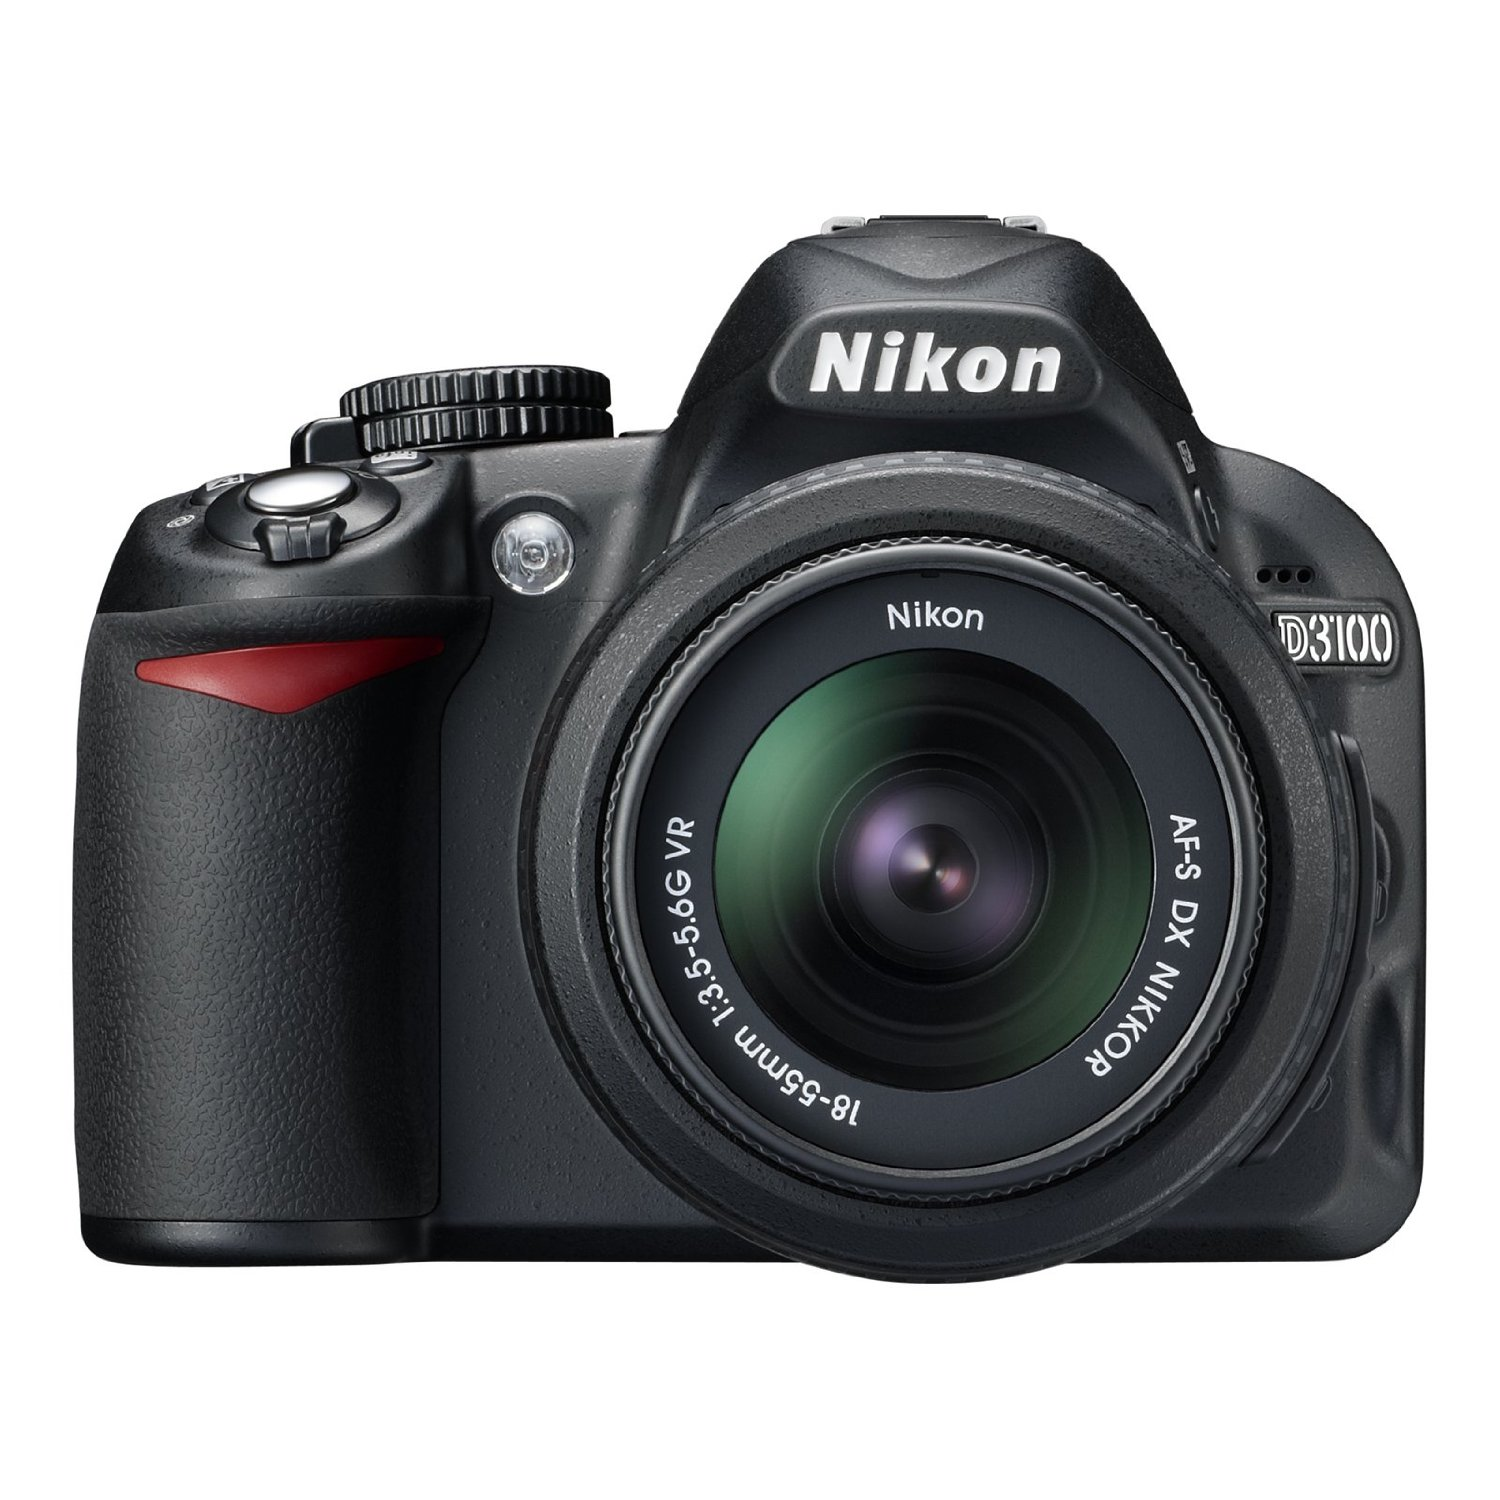 Price to Nikon Digital SLR Camera D3100 14.2MP: $599.00 ; this item